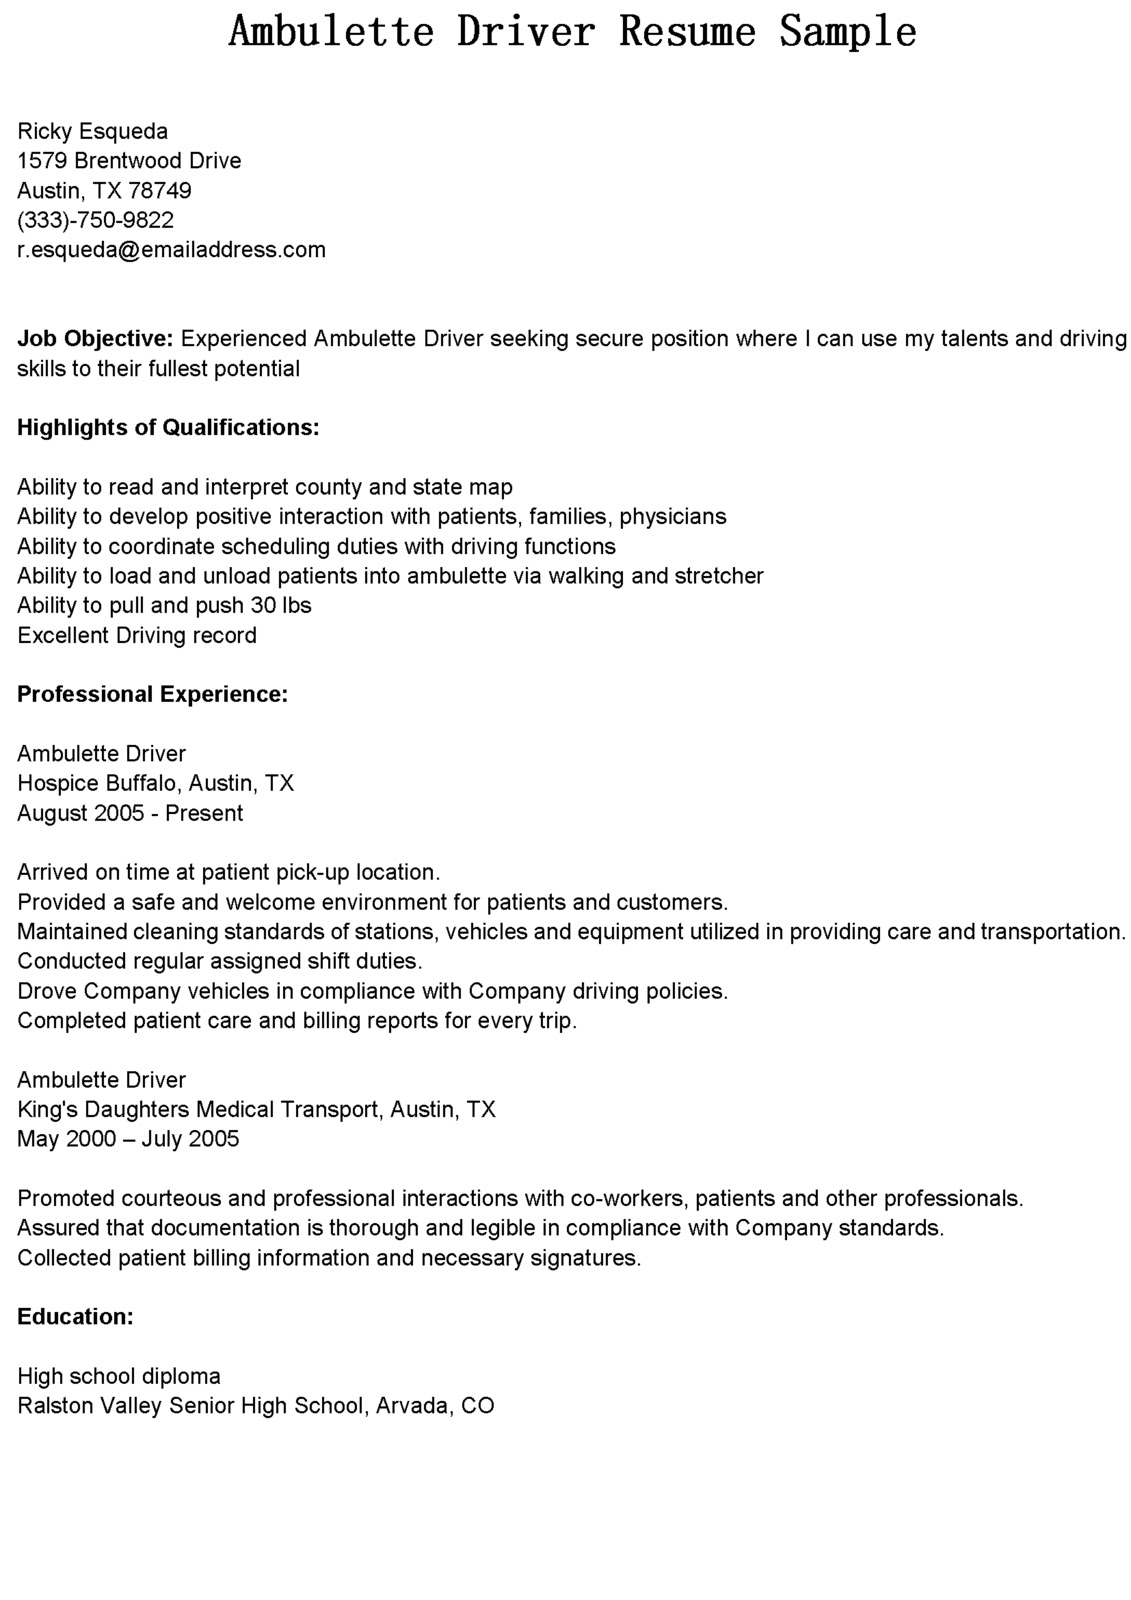 example of a driver resume objective resume samples